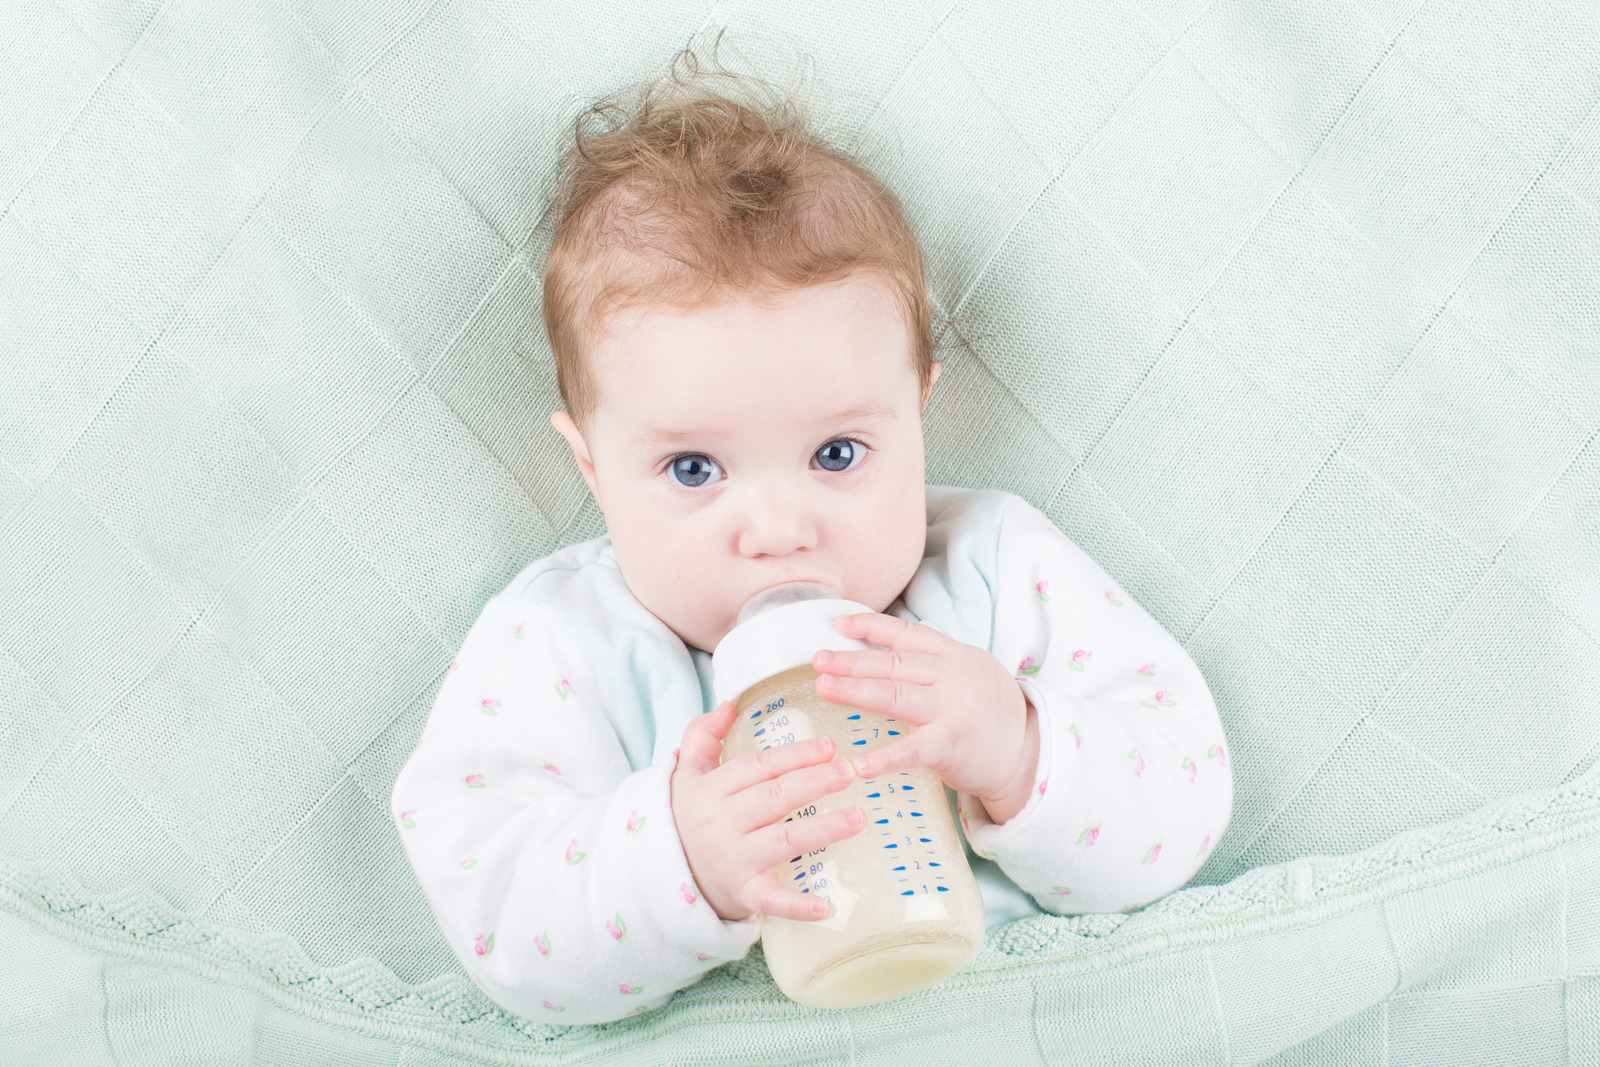 Infant Baby Not Drinking Milk Can I Give My Baby Almond Milk Sleepbaby Org